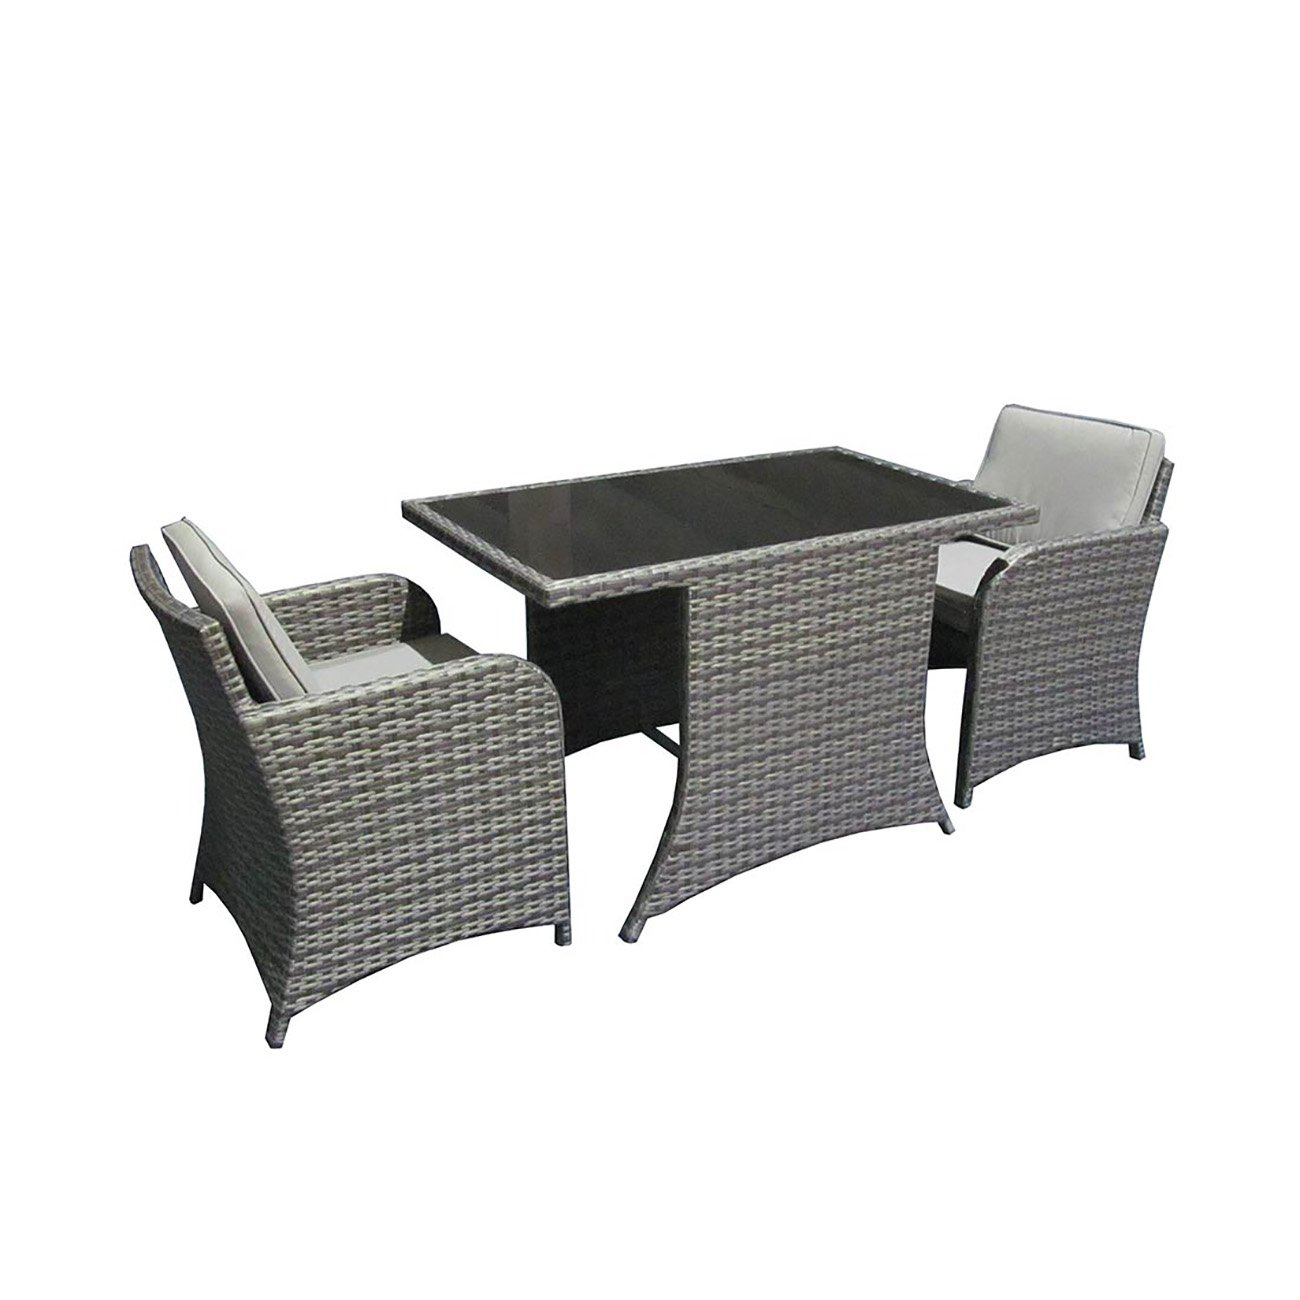 balkonm bel set rattan outliv helgoland balkonset 3 tlg polyrattan 2er sitzgruppe lounge set. Black Bedroom Furniture Sets. Home Design Ideas